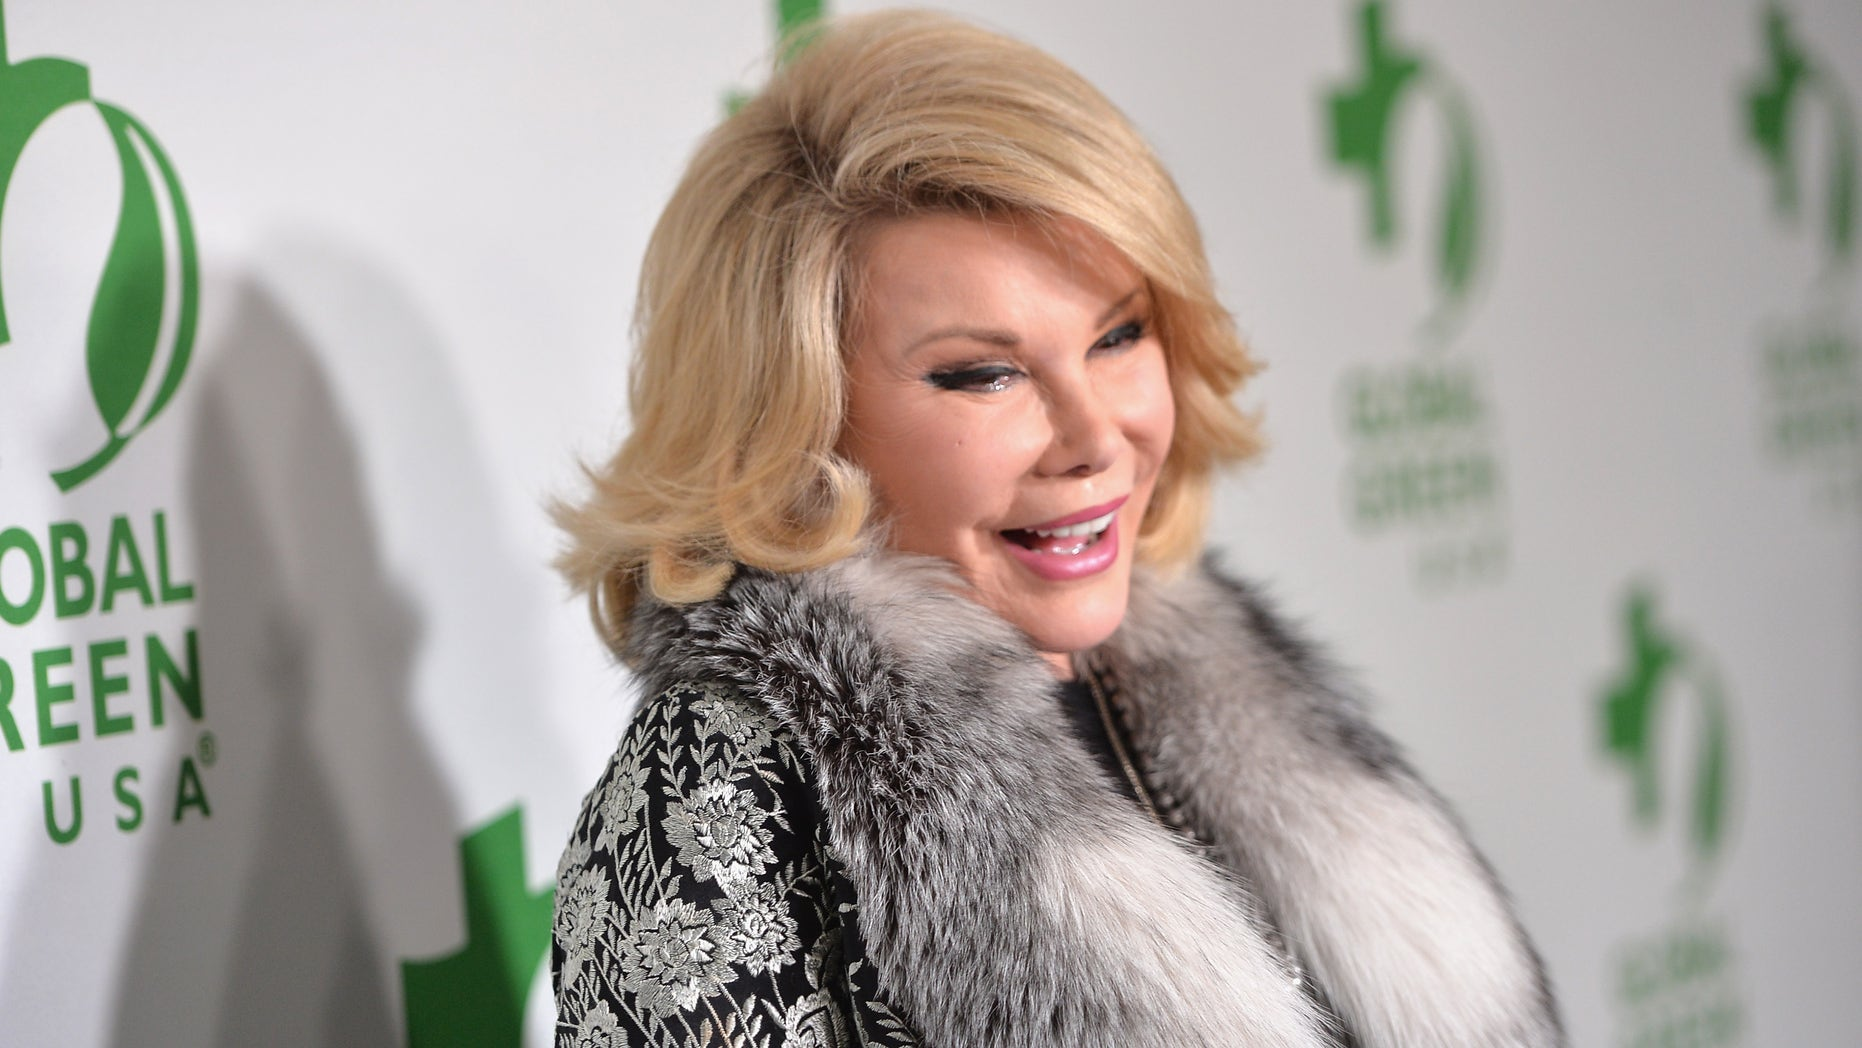 Joan Rivers attends Global Green USA's 11th Pre-Oscar party on February 26, 2014 in Hollywood, California.